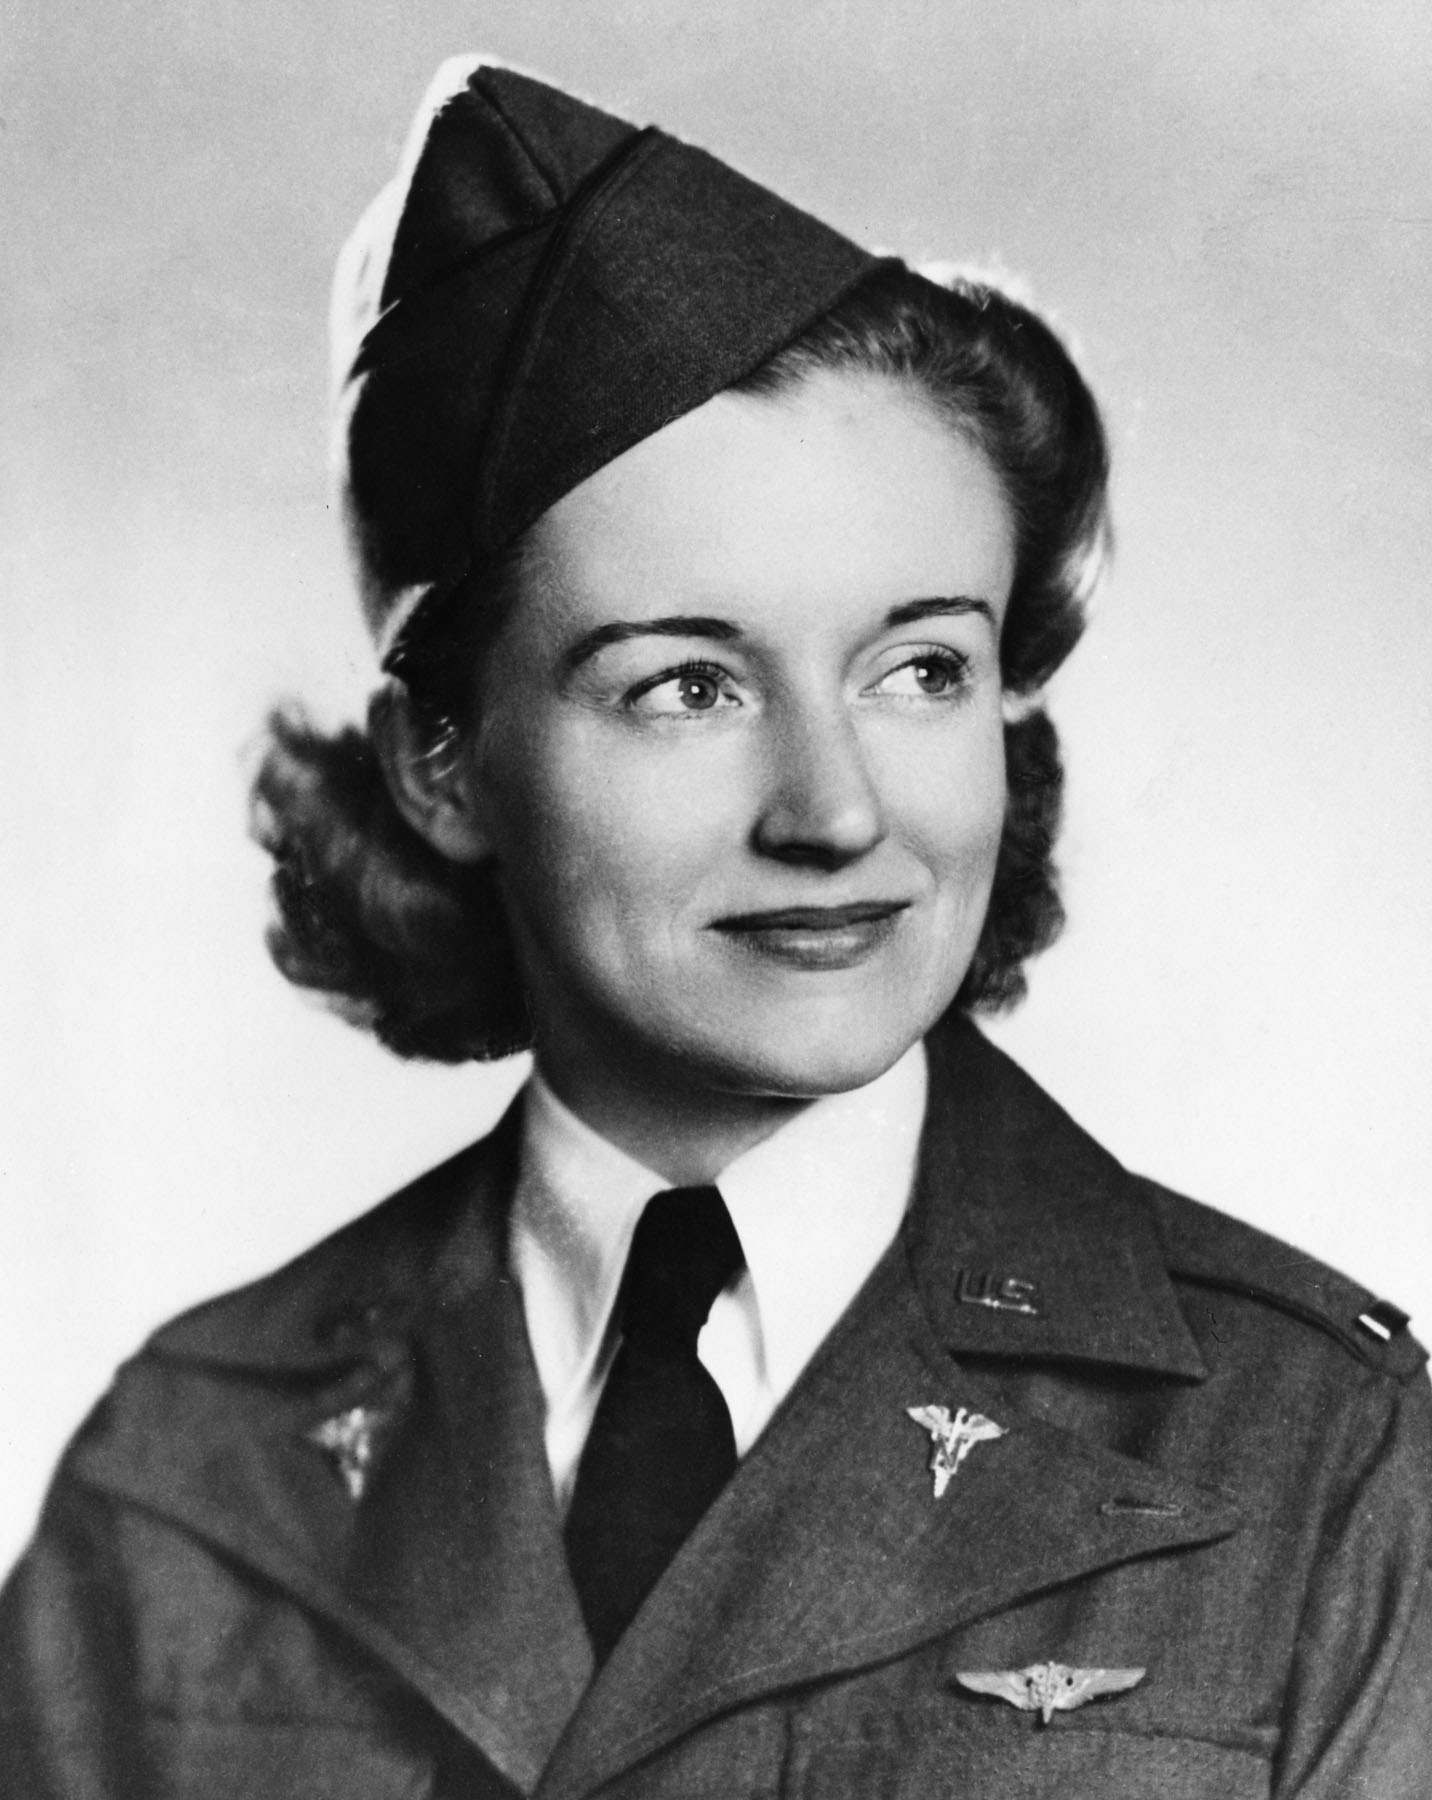 USAAF Flight Nurse Ruth M. Gardiner